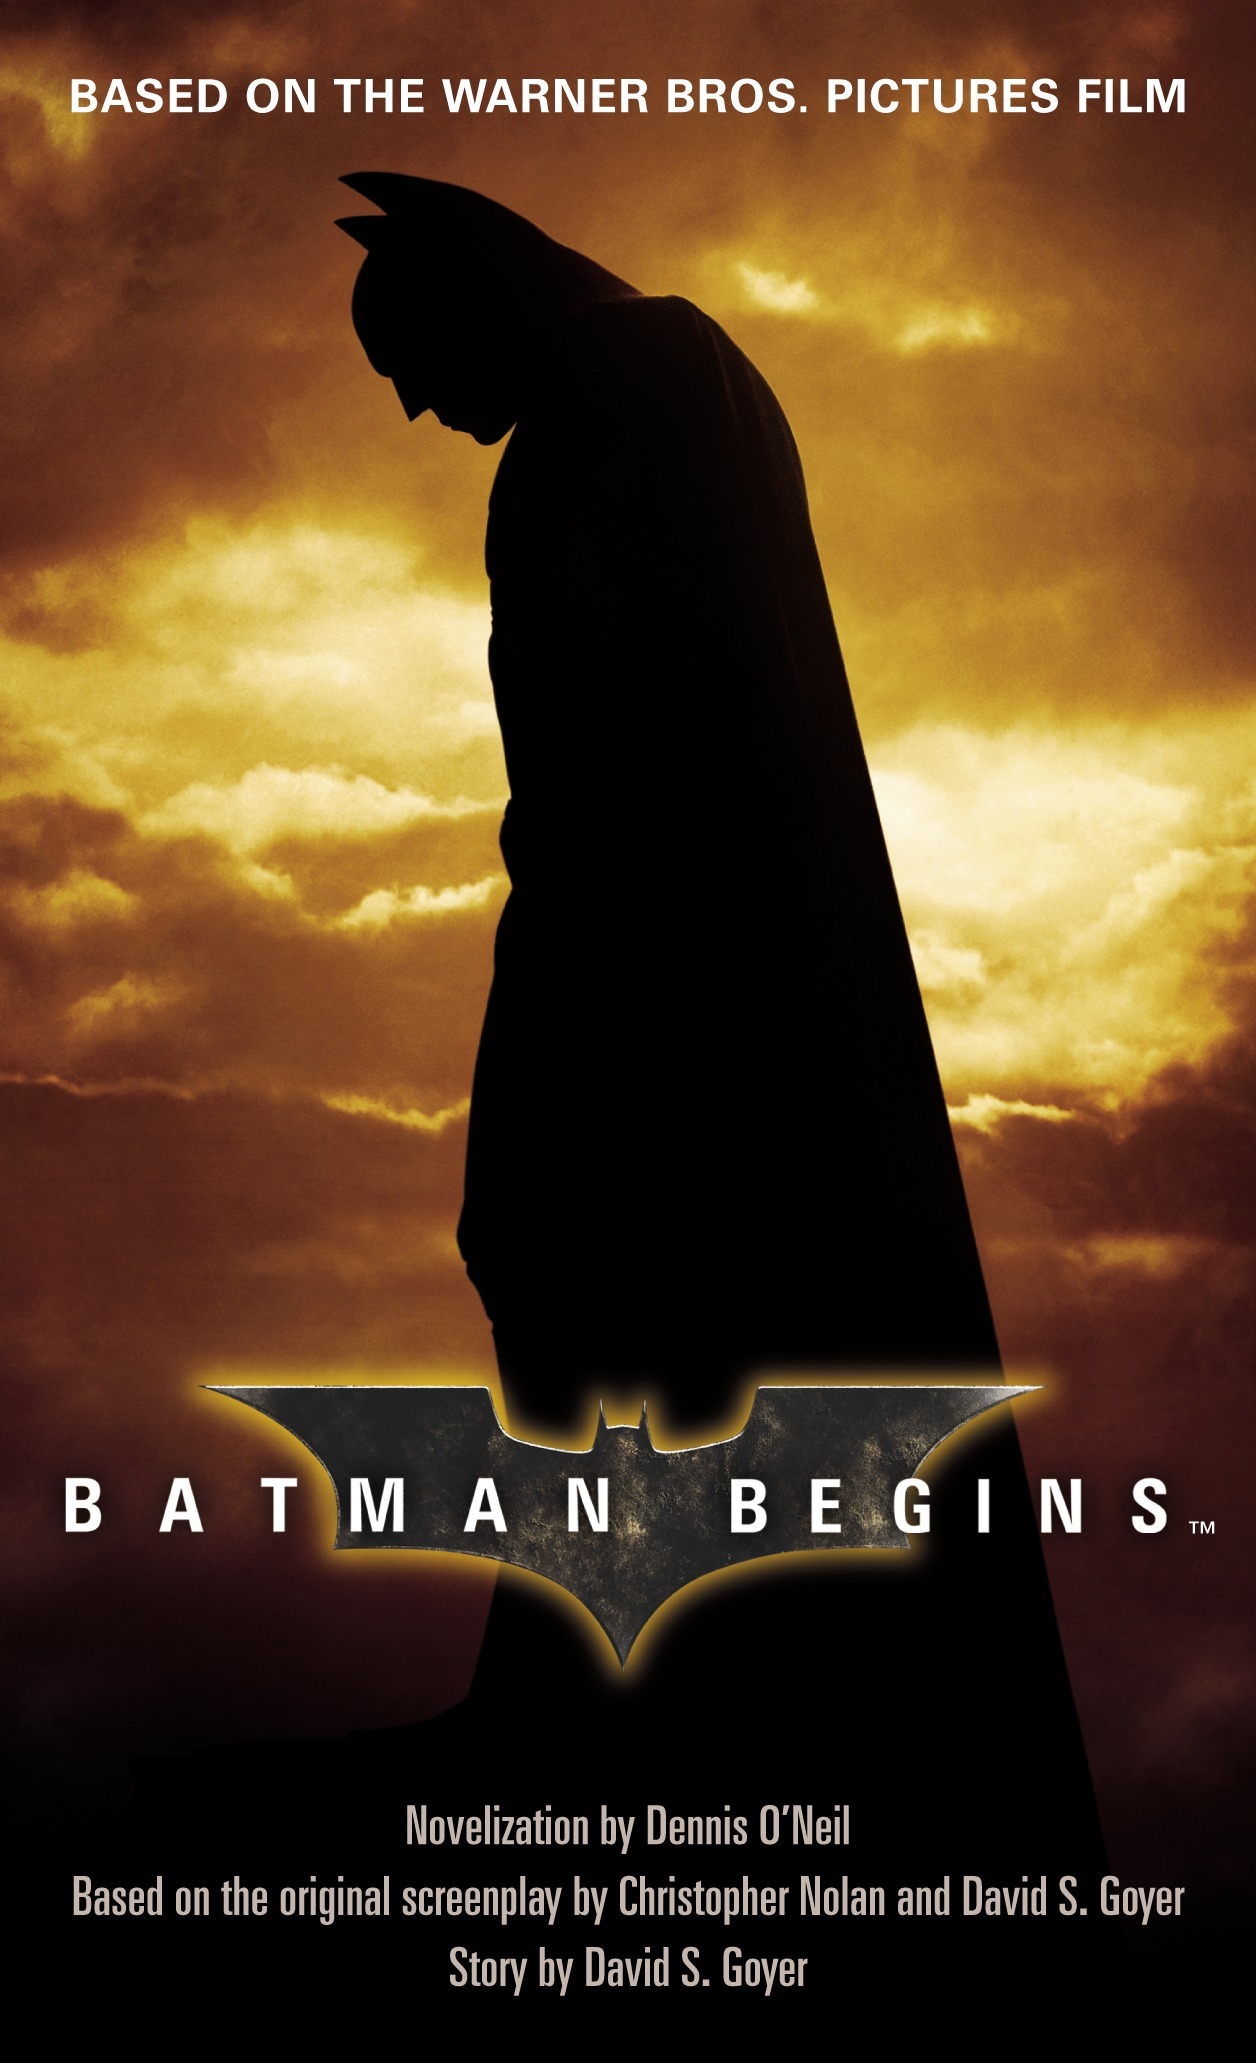 File:Batman Begins - Novelzation.jpg